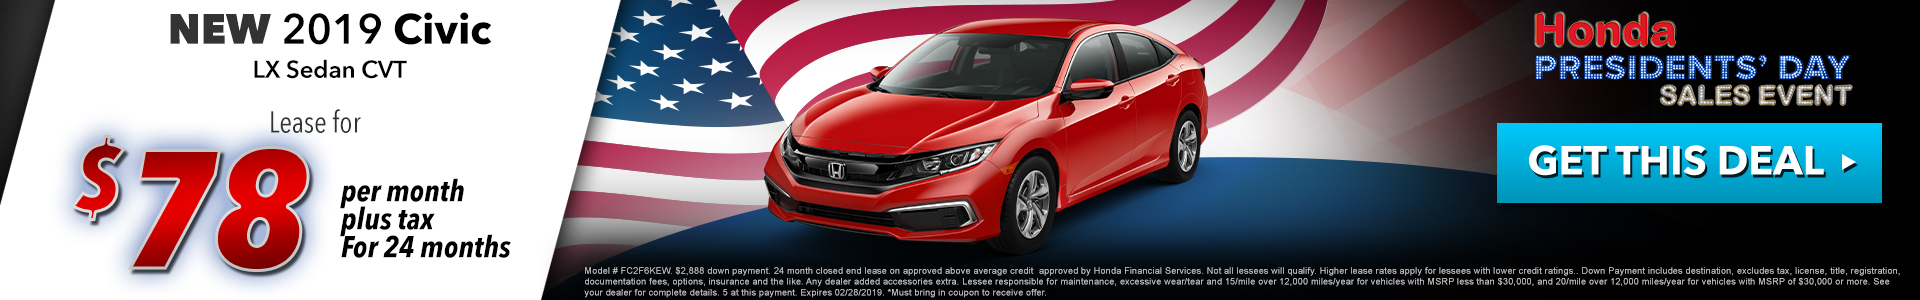 Honda Civic Sedan $78 Lease